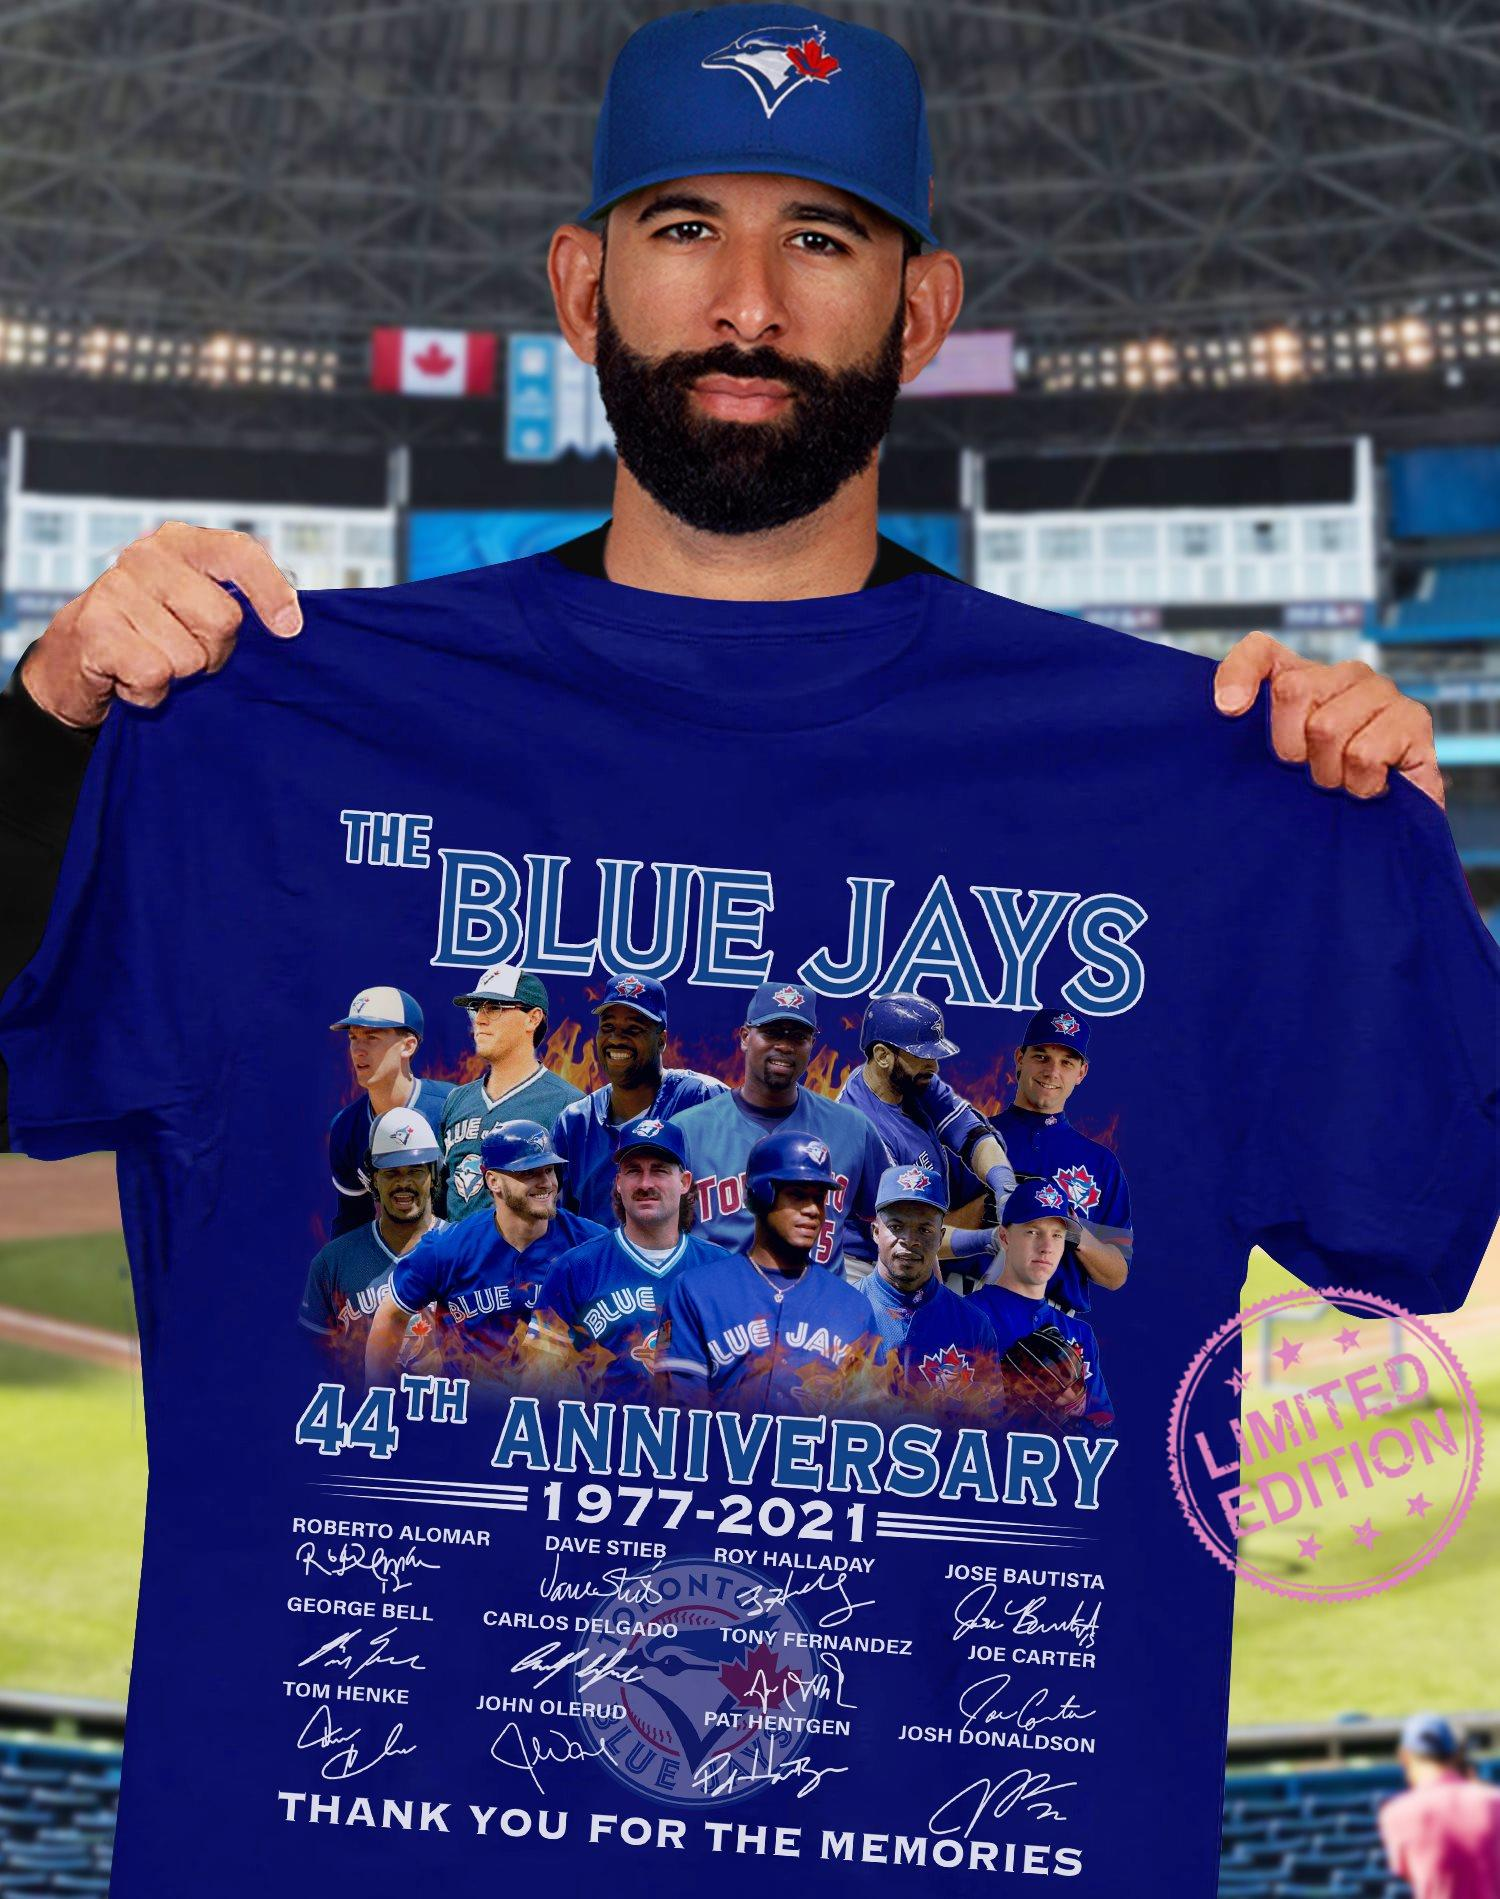 The blue jays 44th anniversary 1977 2021 thank you for the ...